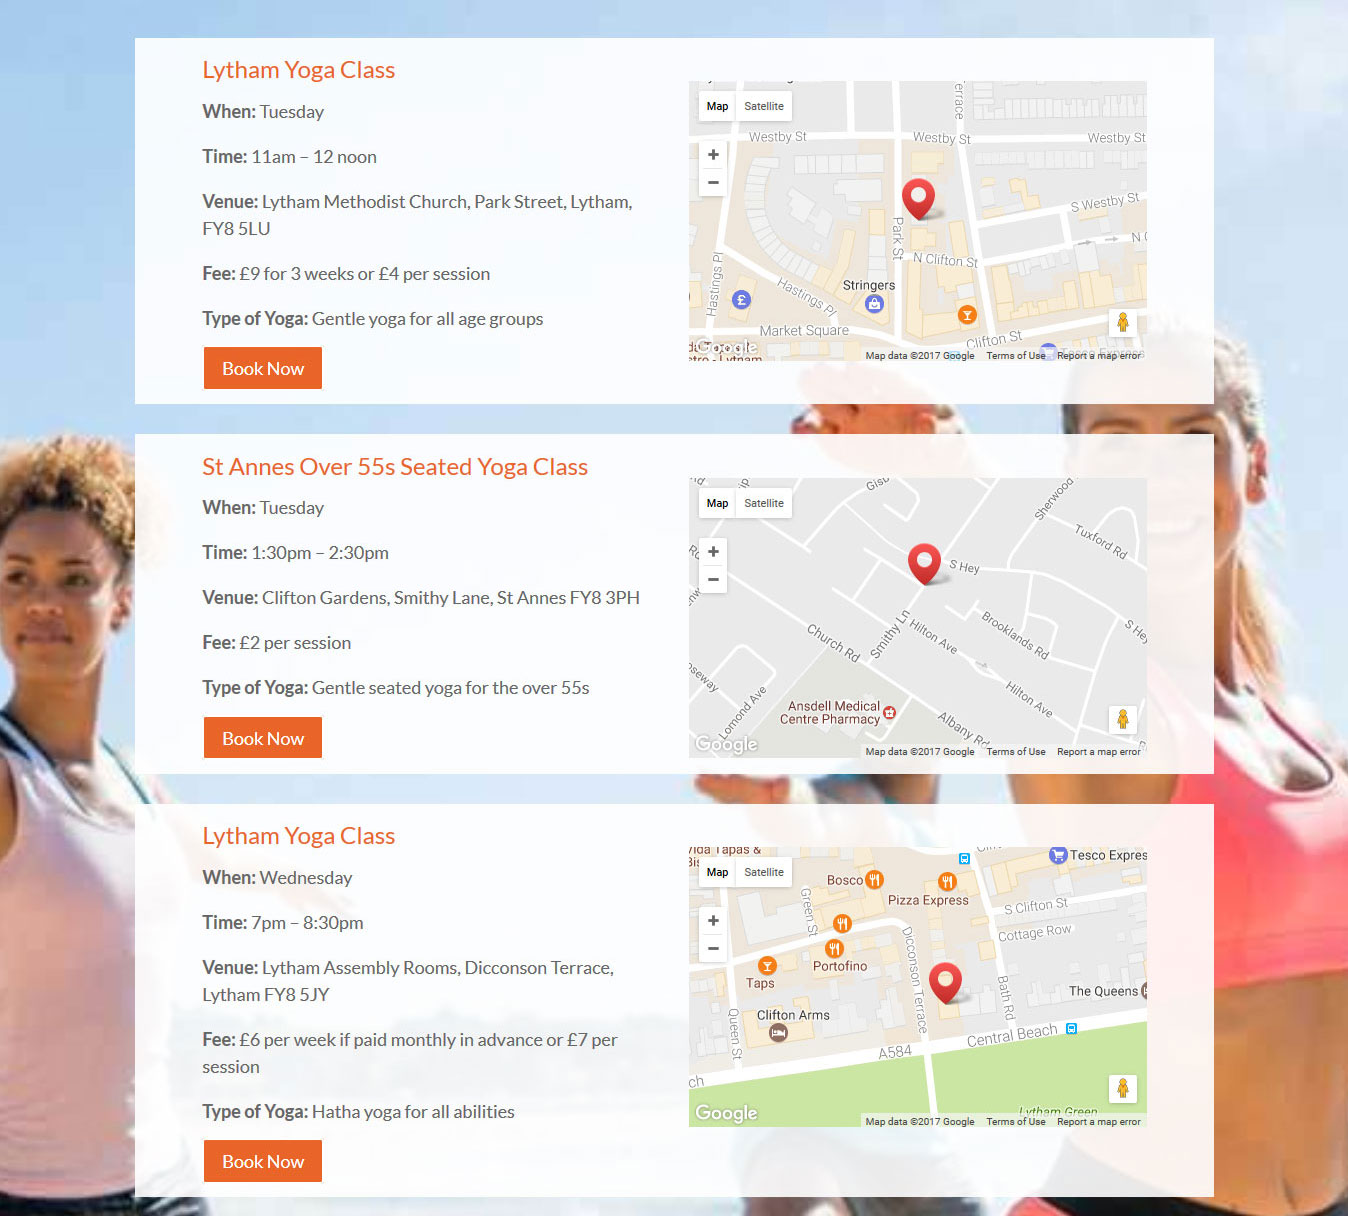 Yoga Page - mobile friendly website design showing yoga classes, interactive Google Maps and Book Now buttons